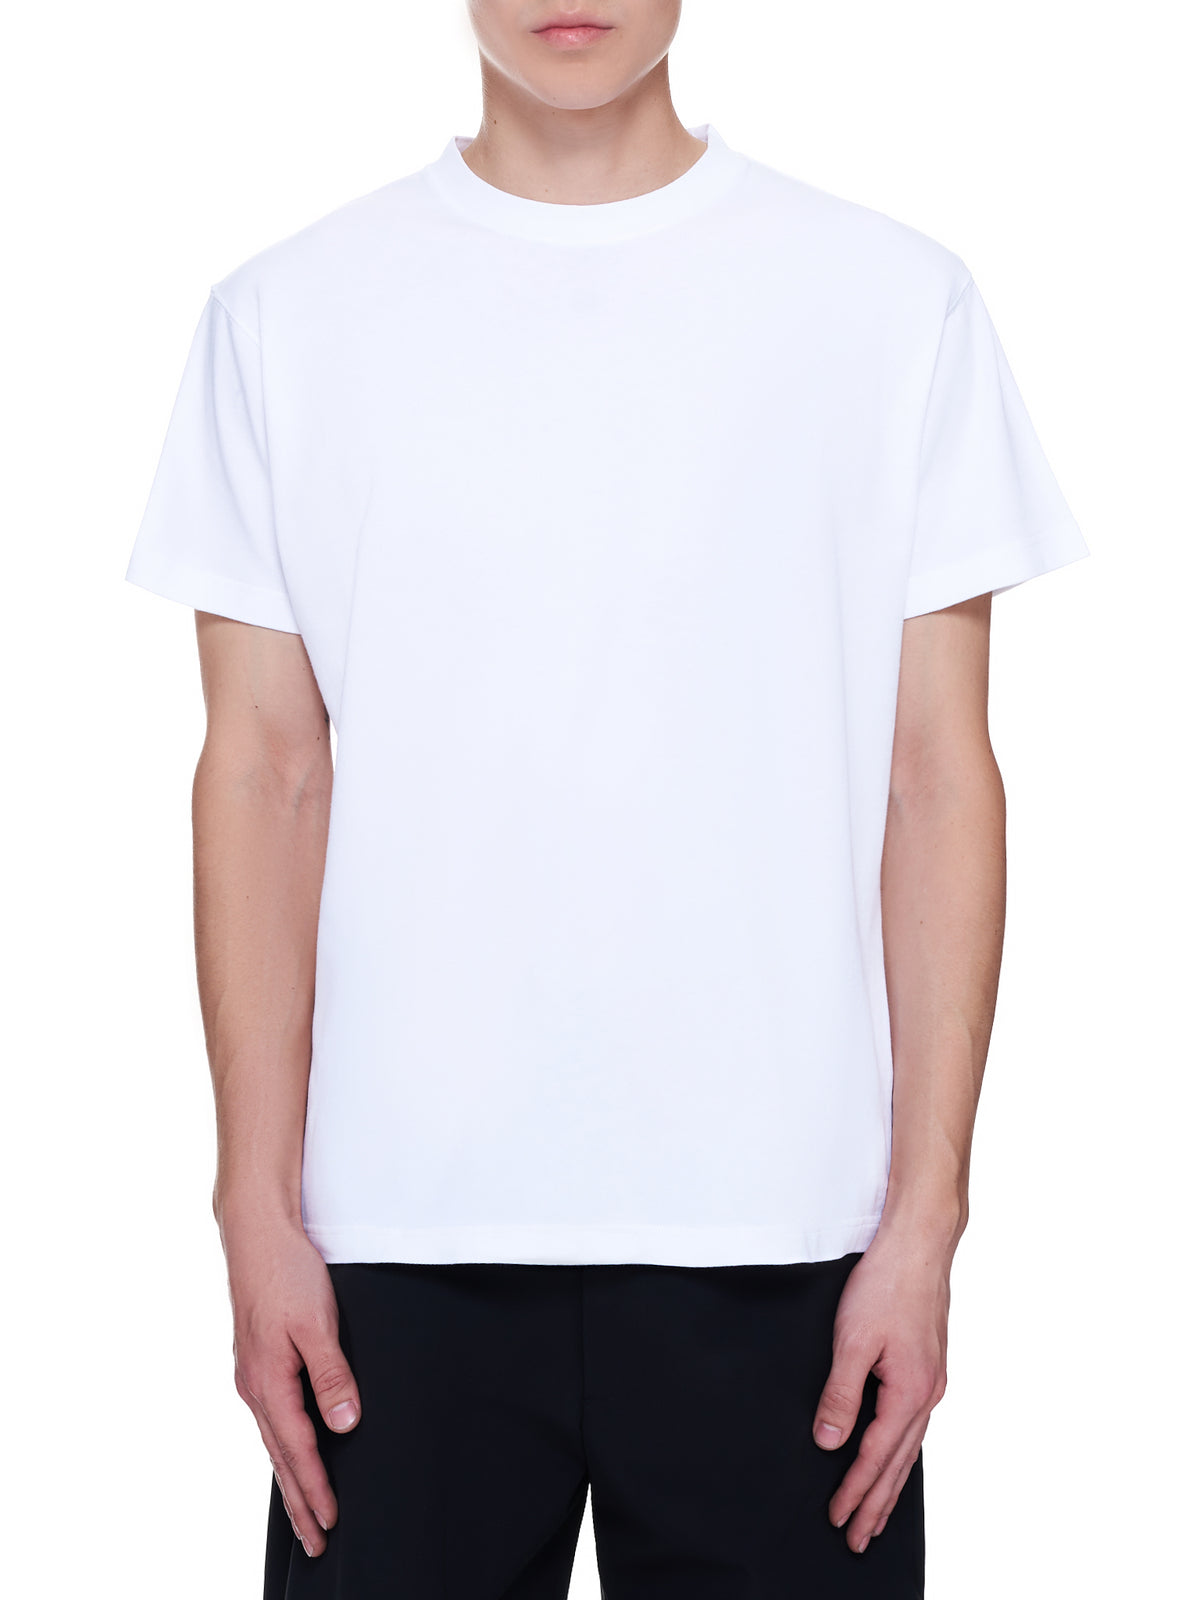 Rear Graphic Printed T-Shirt (MTS039-WHITE)